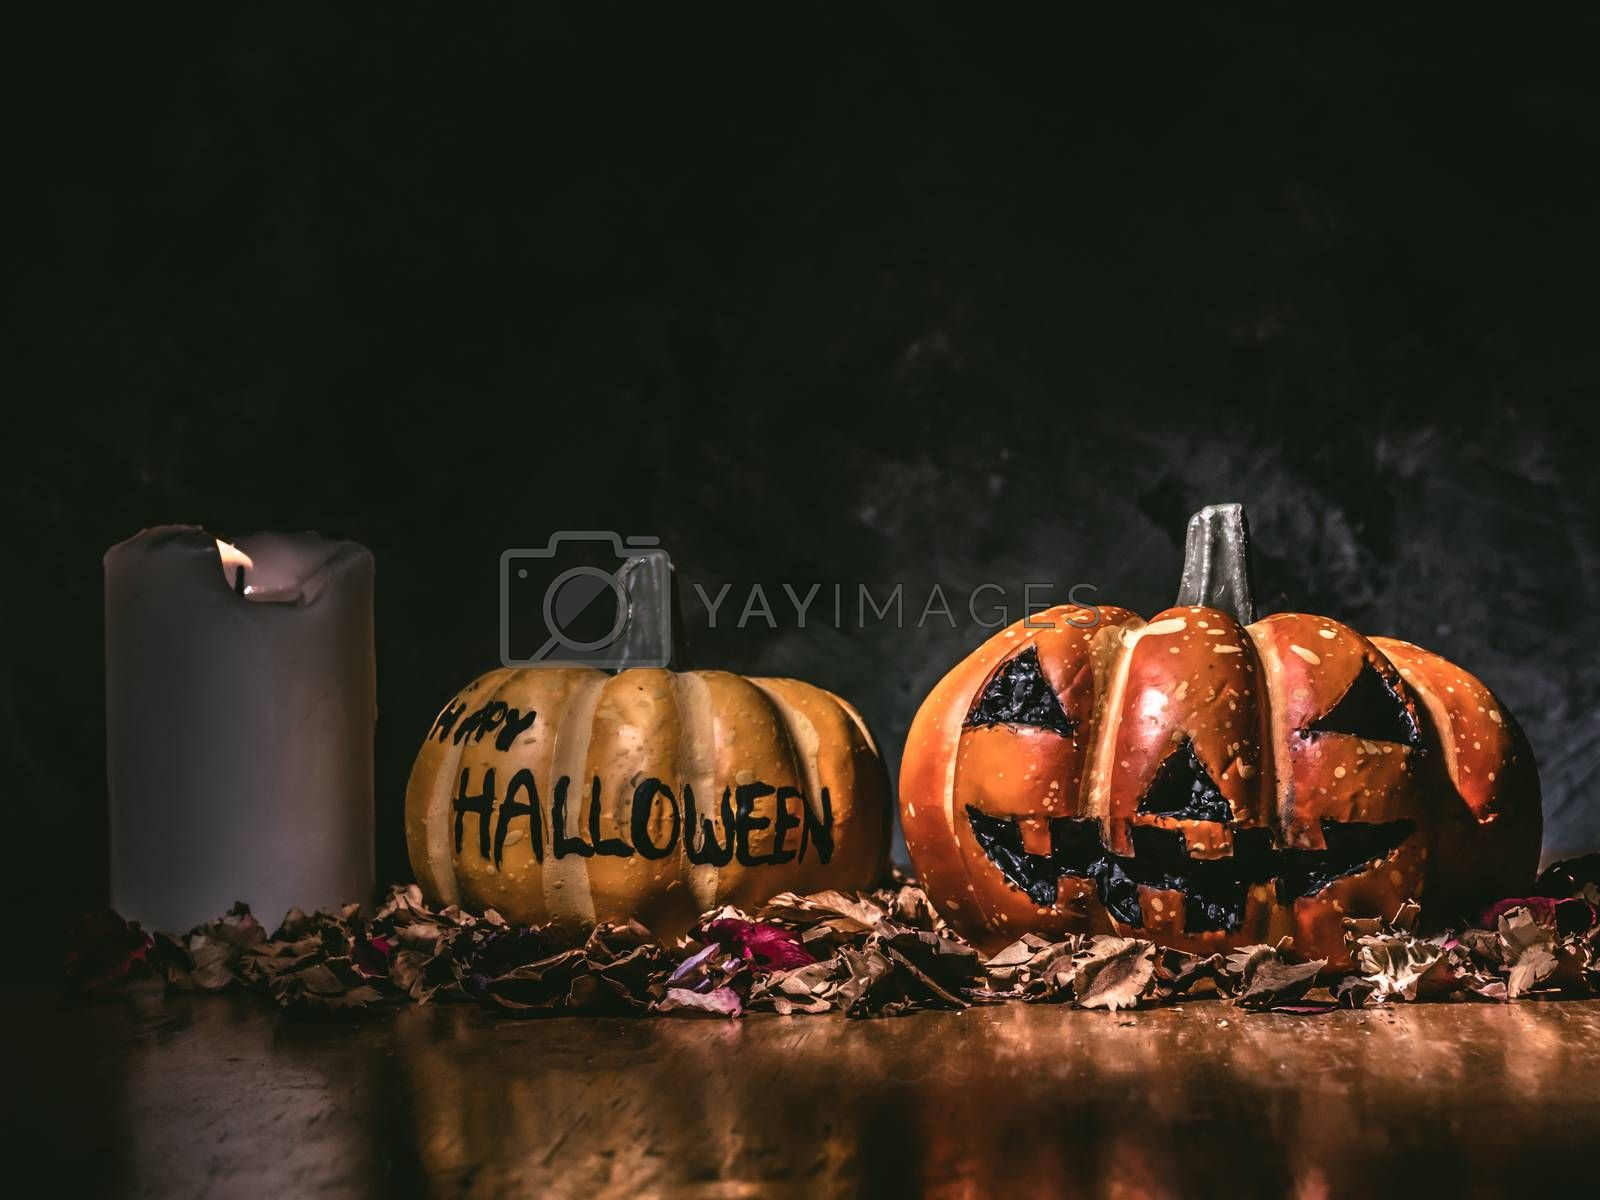 Halloween pumpkins with candlelight on dark background.